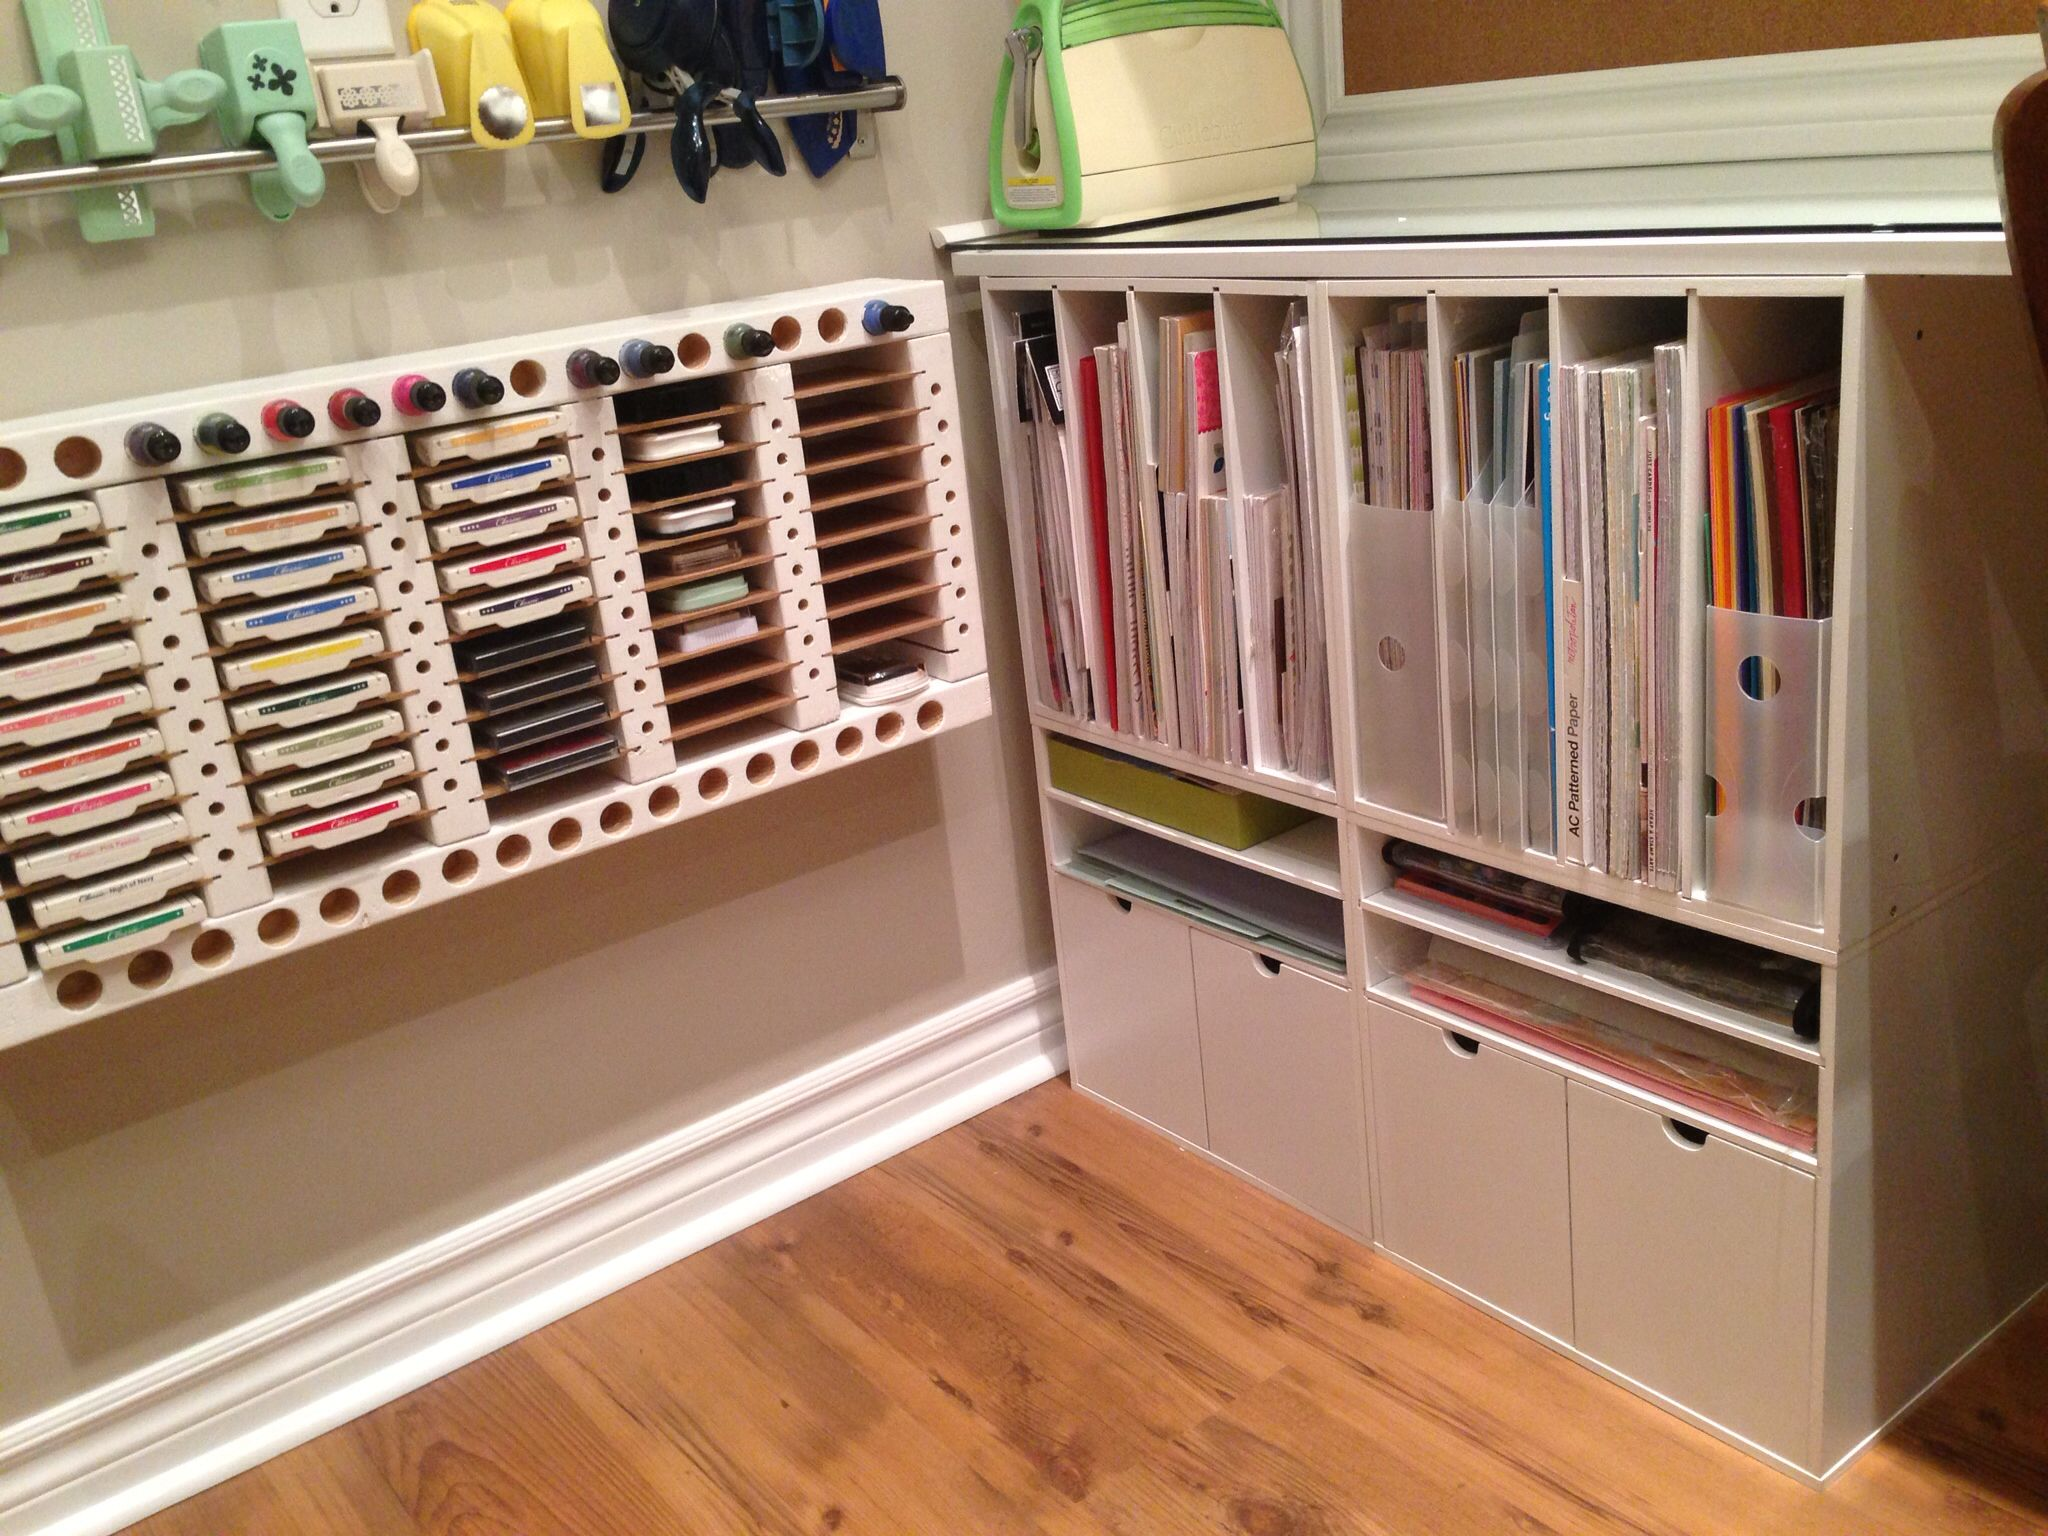 My craft room paper storage.  Check out my craft room tour on YouTube:  http://youtu.be/N-04zGr0e24